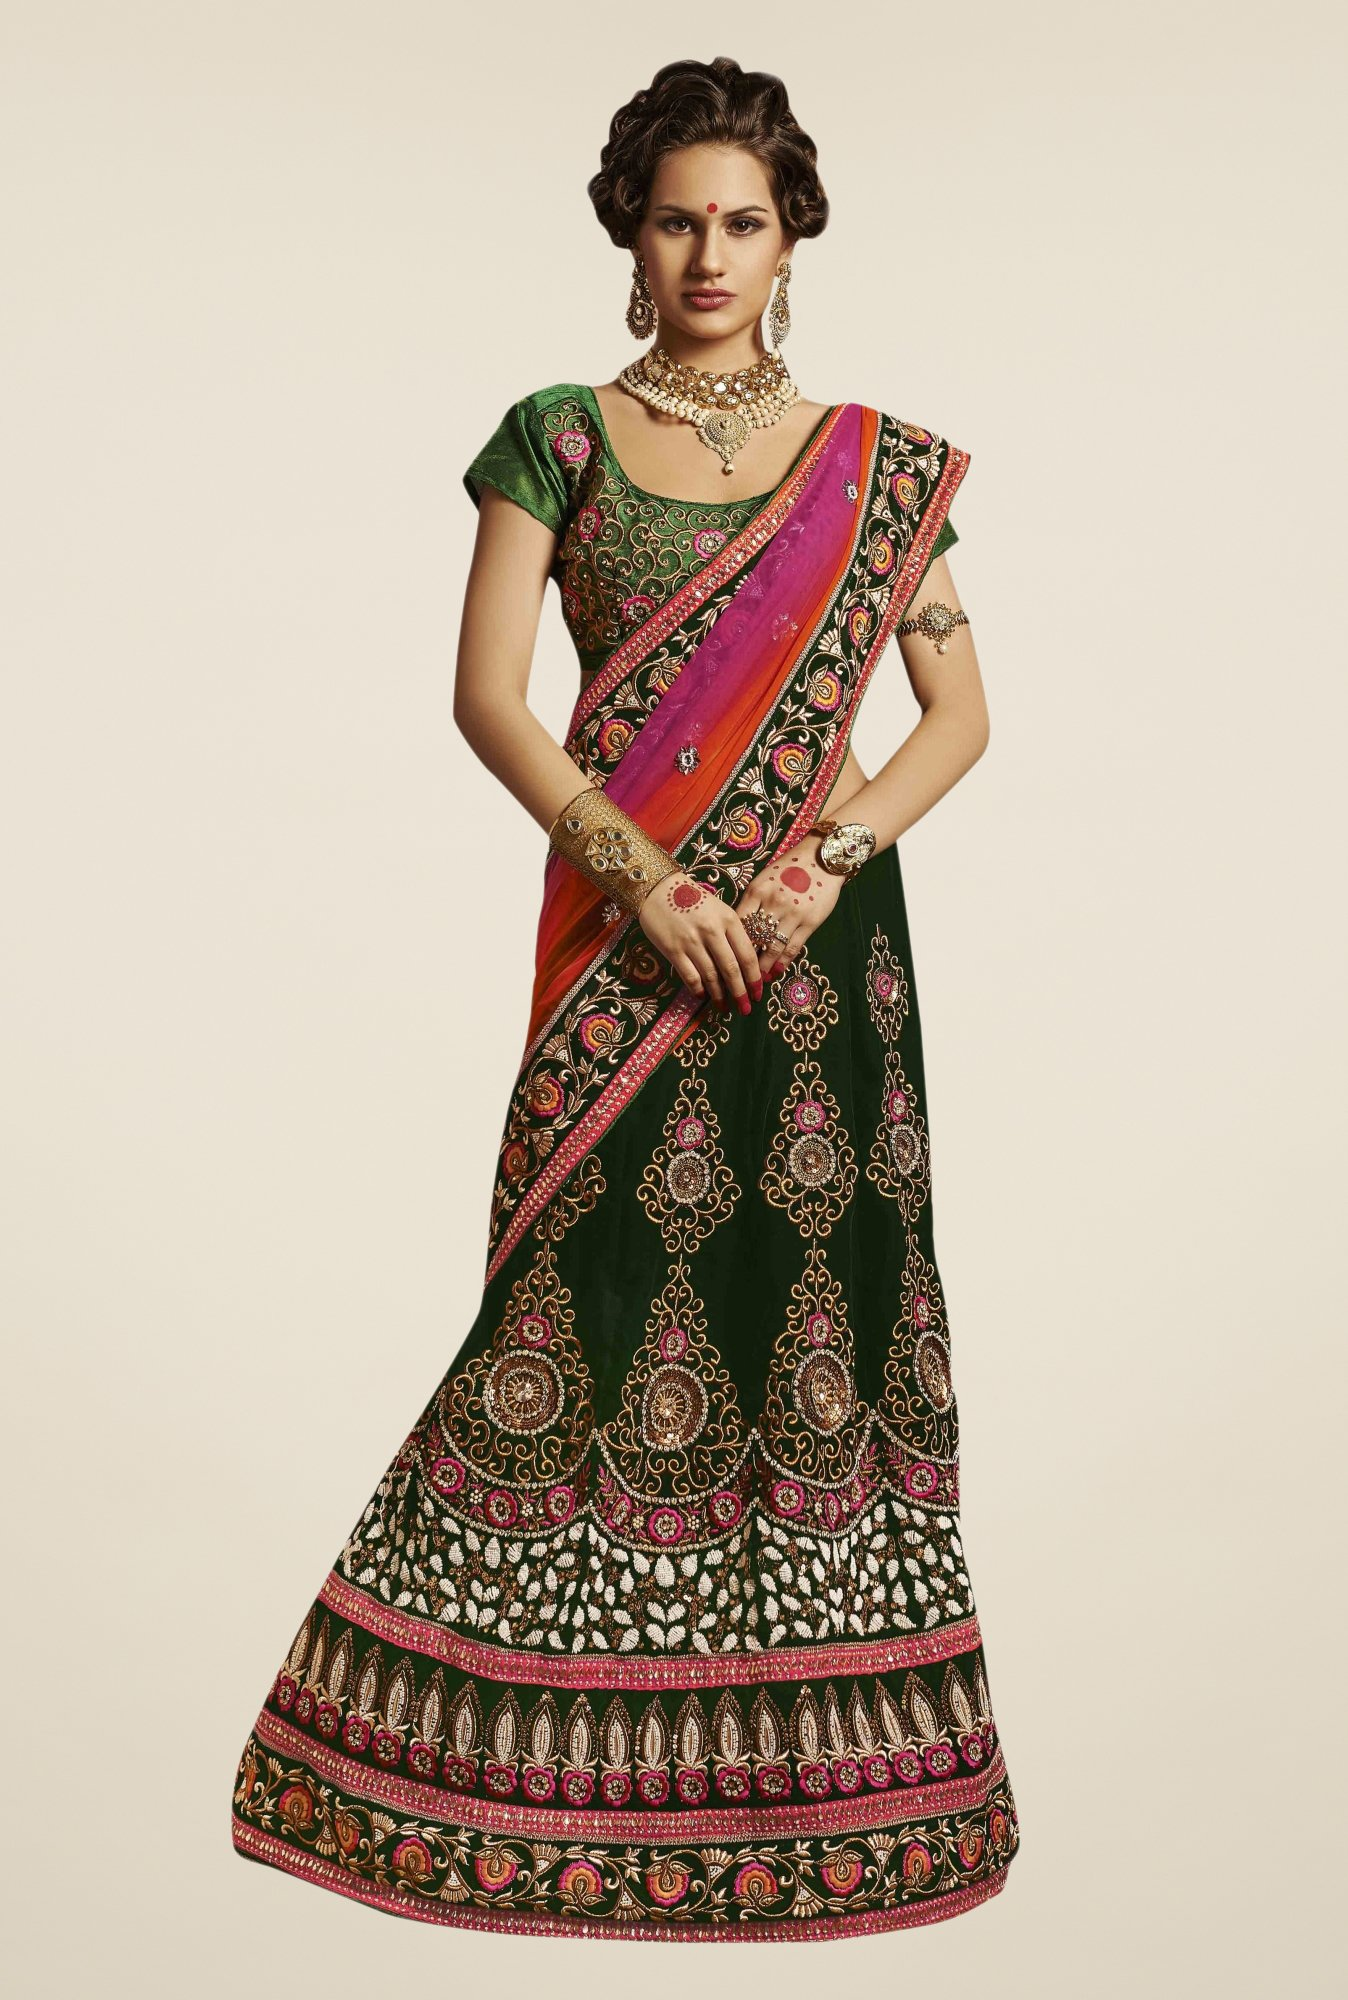 Triveni Black & Pink Embroidered Net Velvet Lehenga Saree